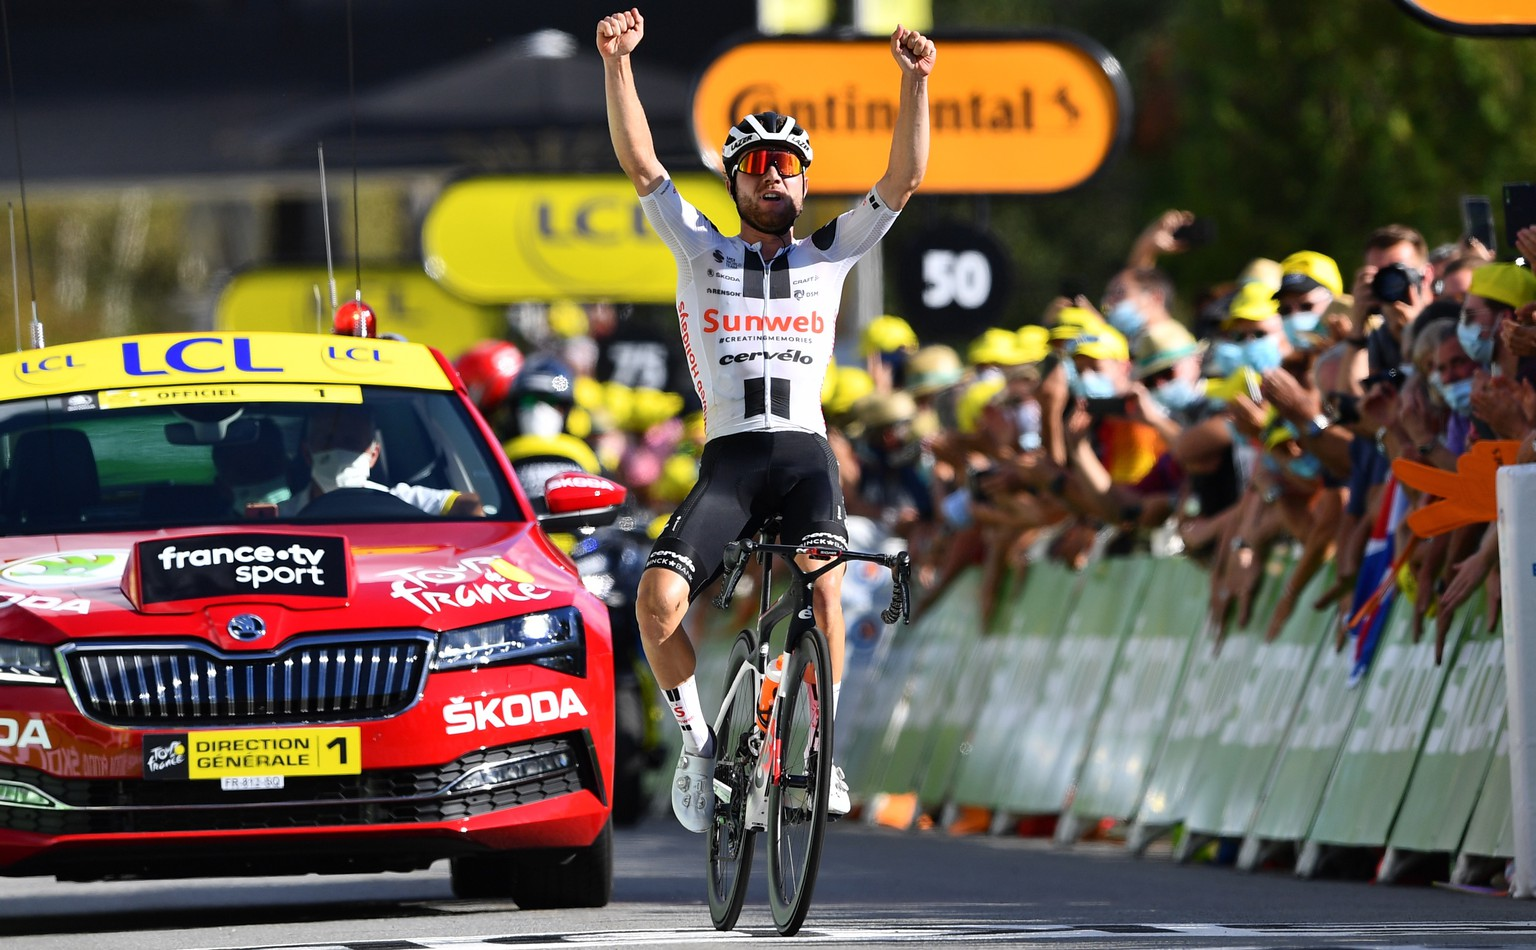 epa08659232 Swiss rider Marc Hirschi of Team Sunweb wins the 12th stage of the Tour de France cycling race over 218km from Chauvigny to Sarran, France, 10 September 2020.  EPA/Stuart Franklin / Pool